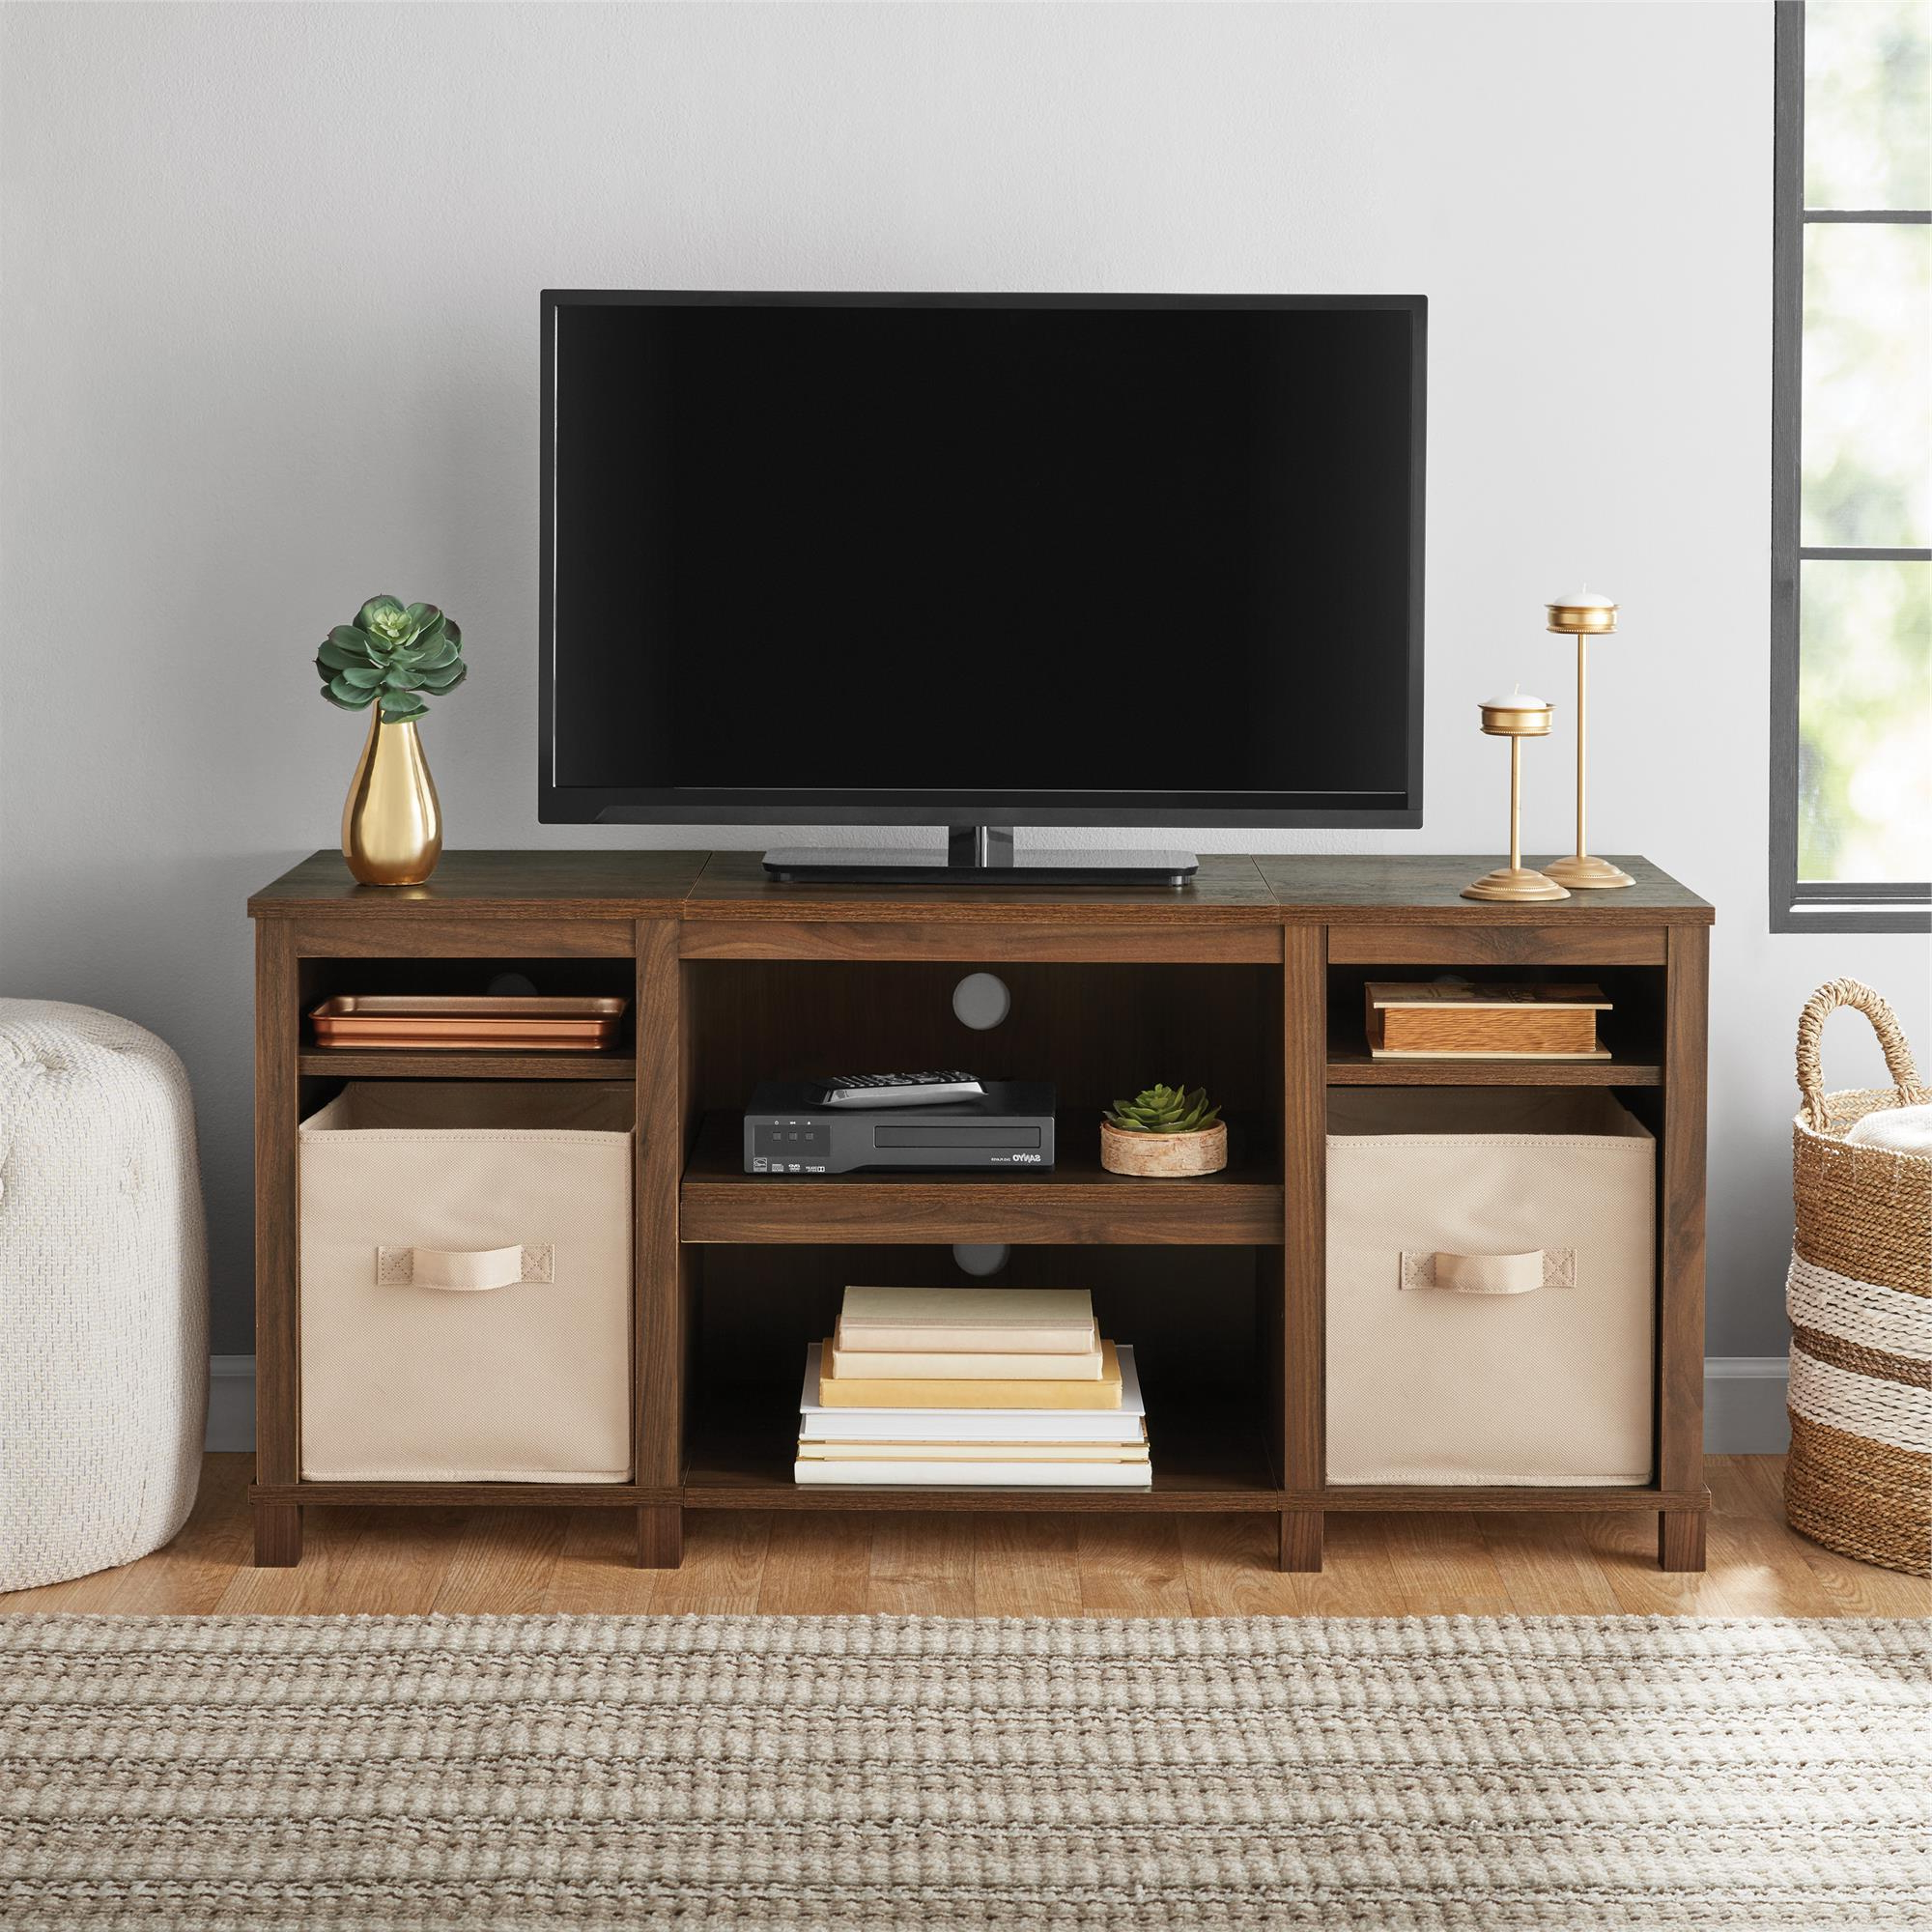 """Mainstays Parsons Cubby Tv Stand For Tvs Up To 50"""", Walnut In Allegra Tv Stands For Tvs Up To 50"""" (View 2 of 20)"""